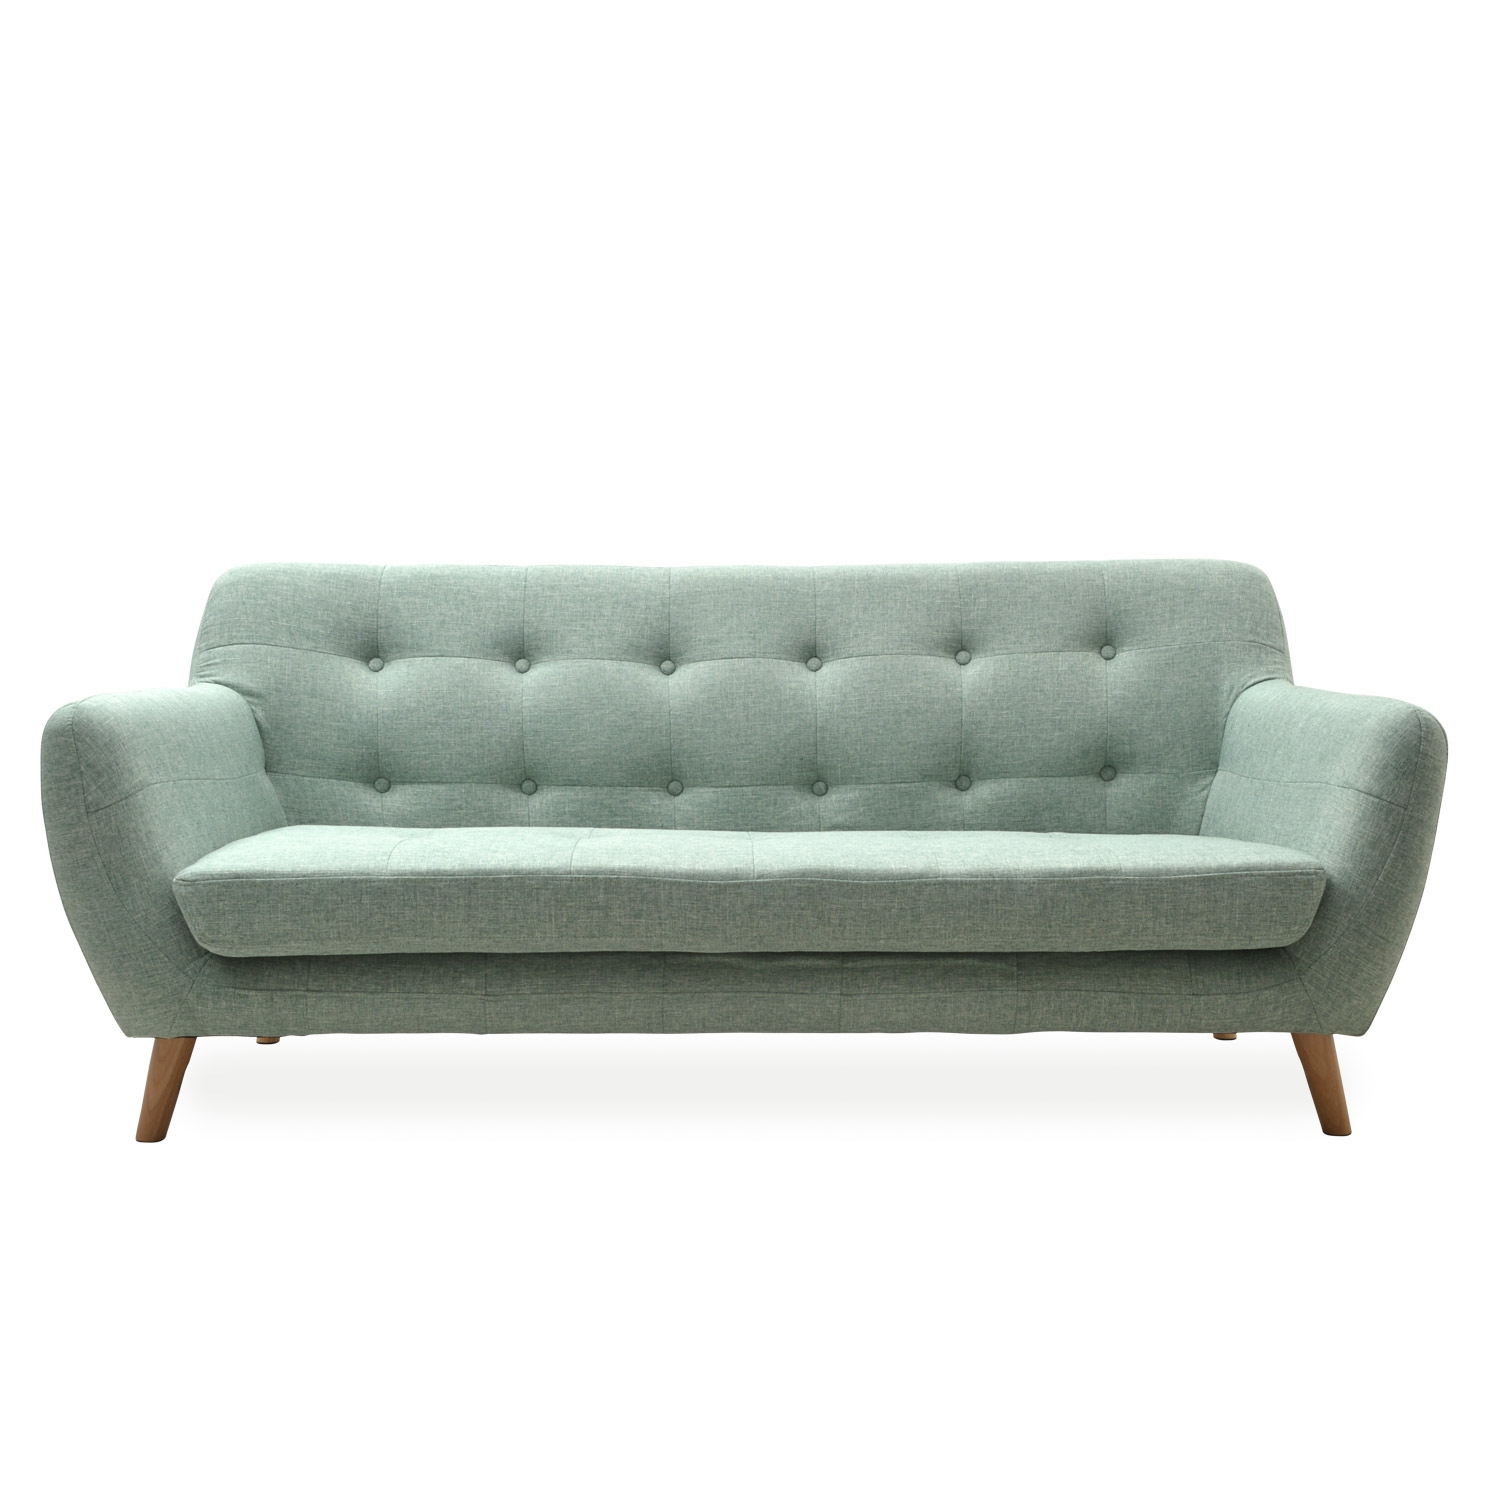 Sofa vintage barato online sofa retro sofa nordico for Sofas nordicos